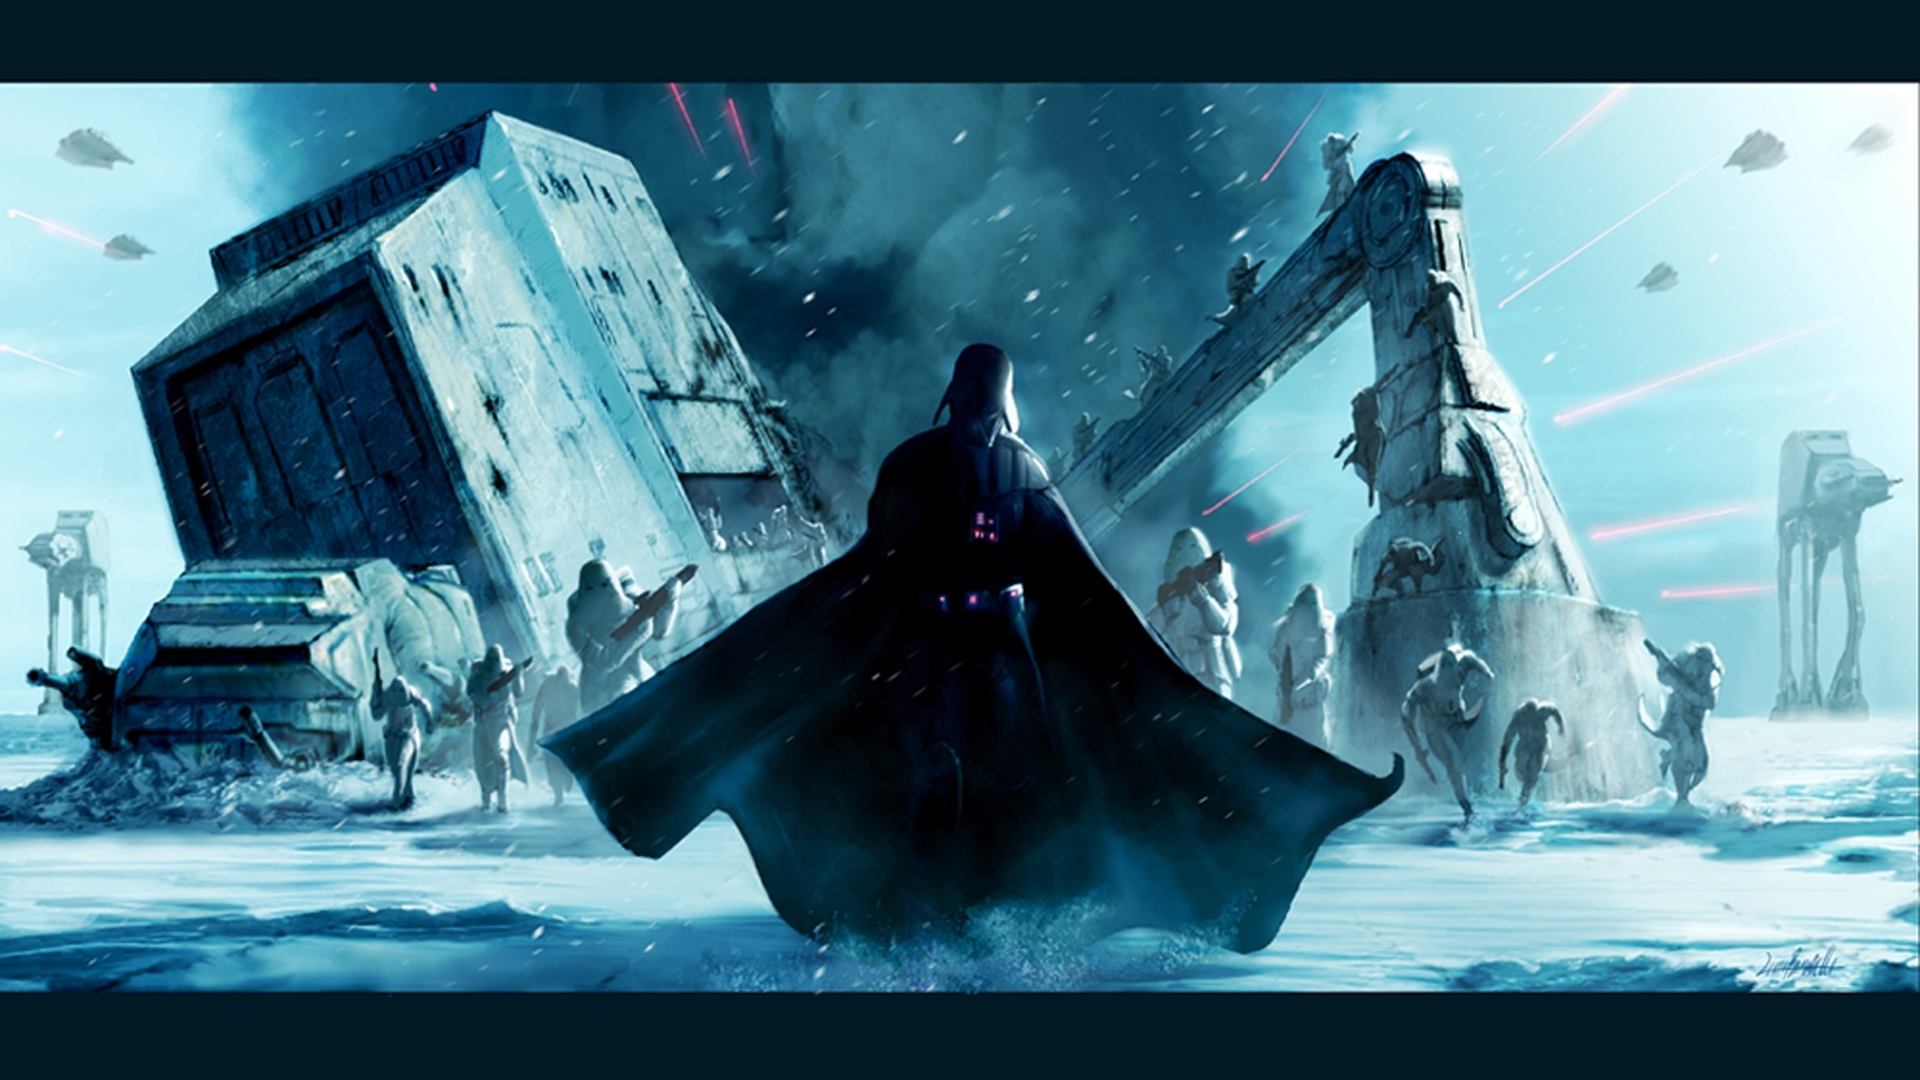 star wars snow Darth HD Wallpaper